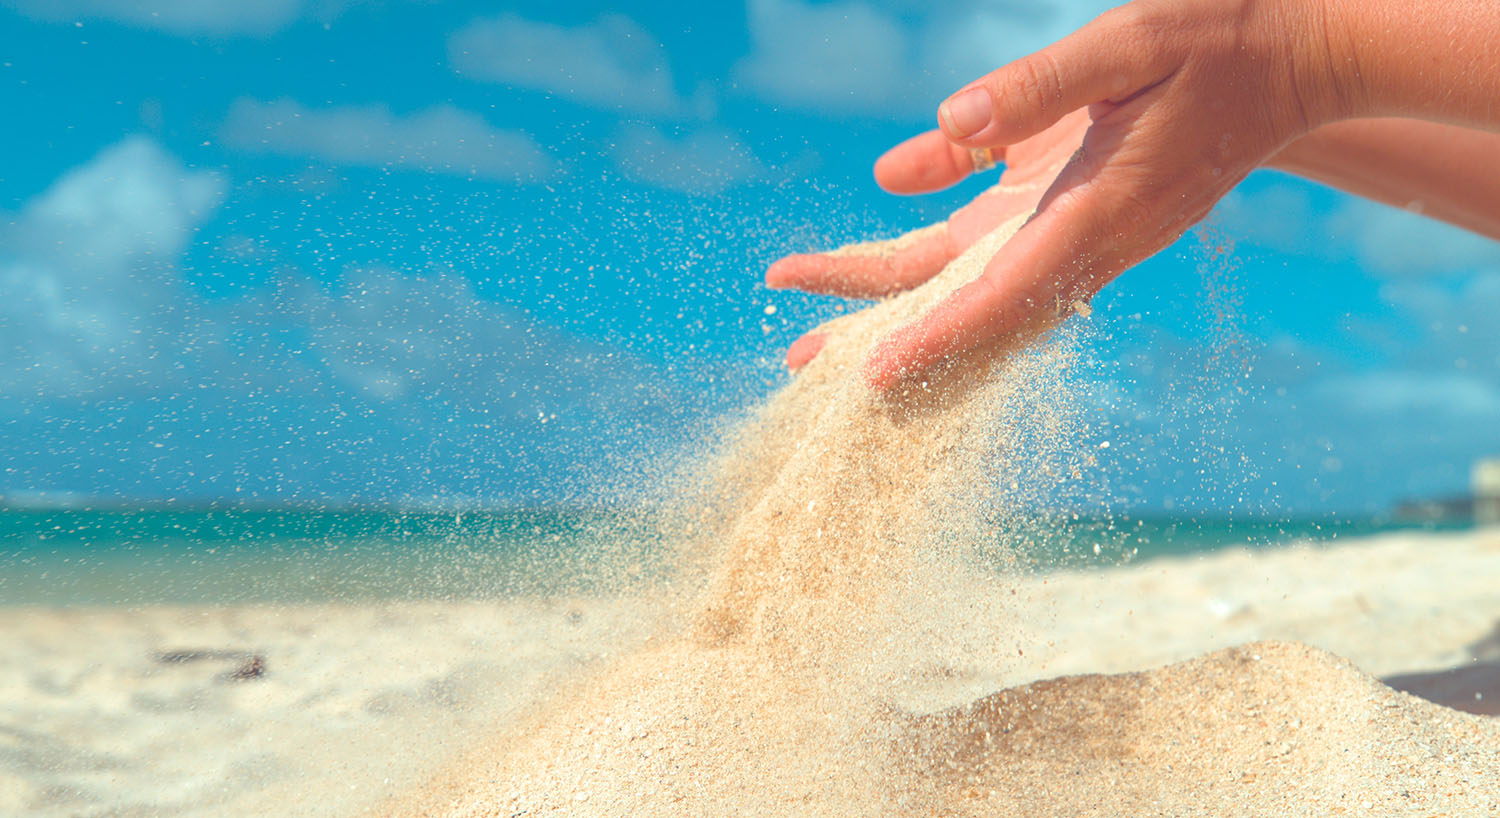 Grains of Sand through hands